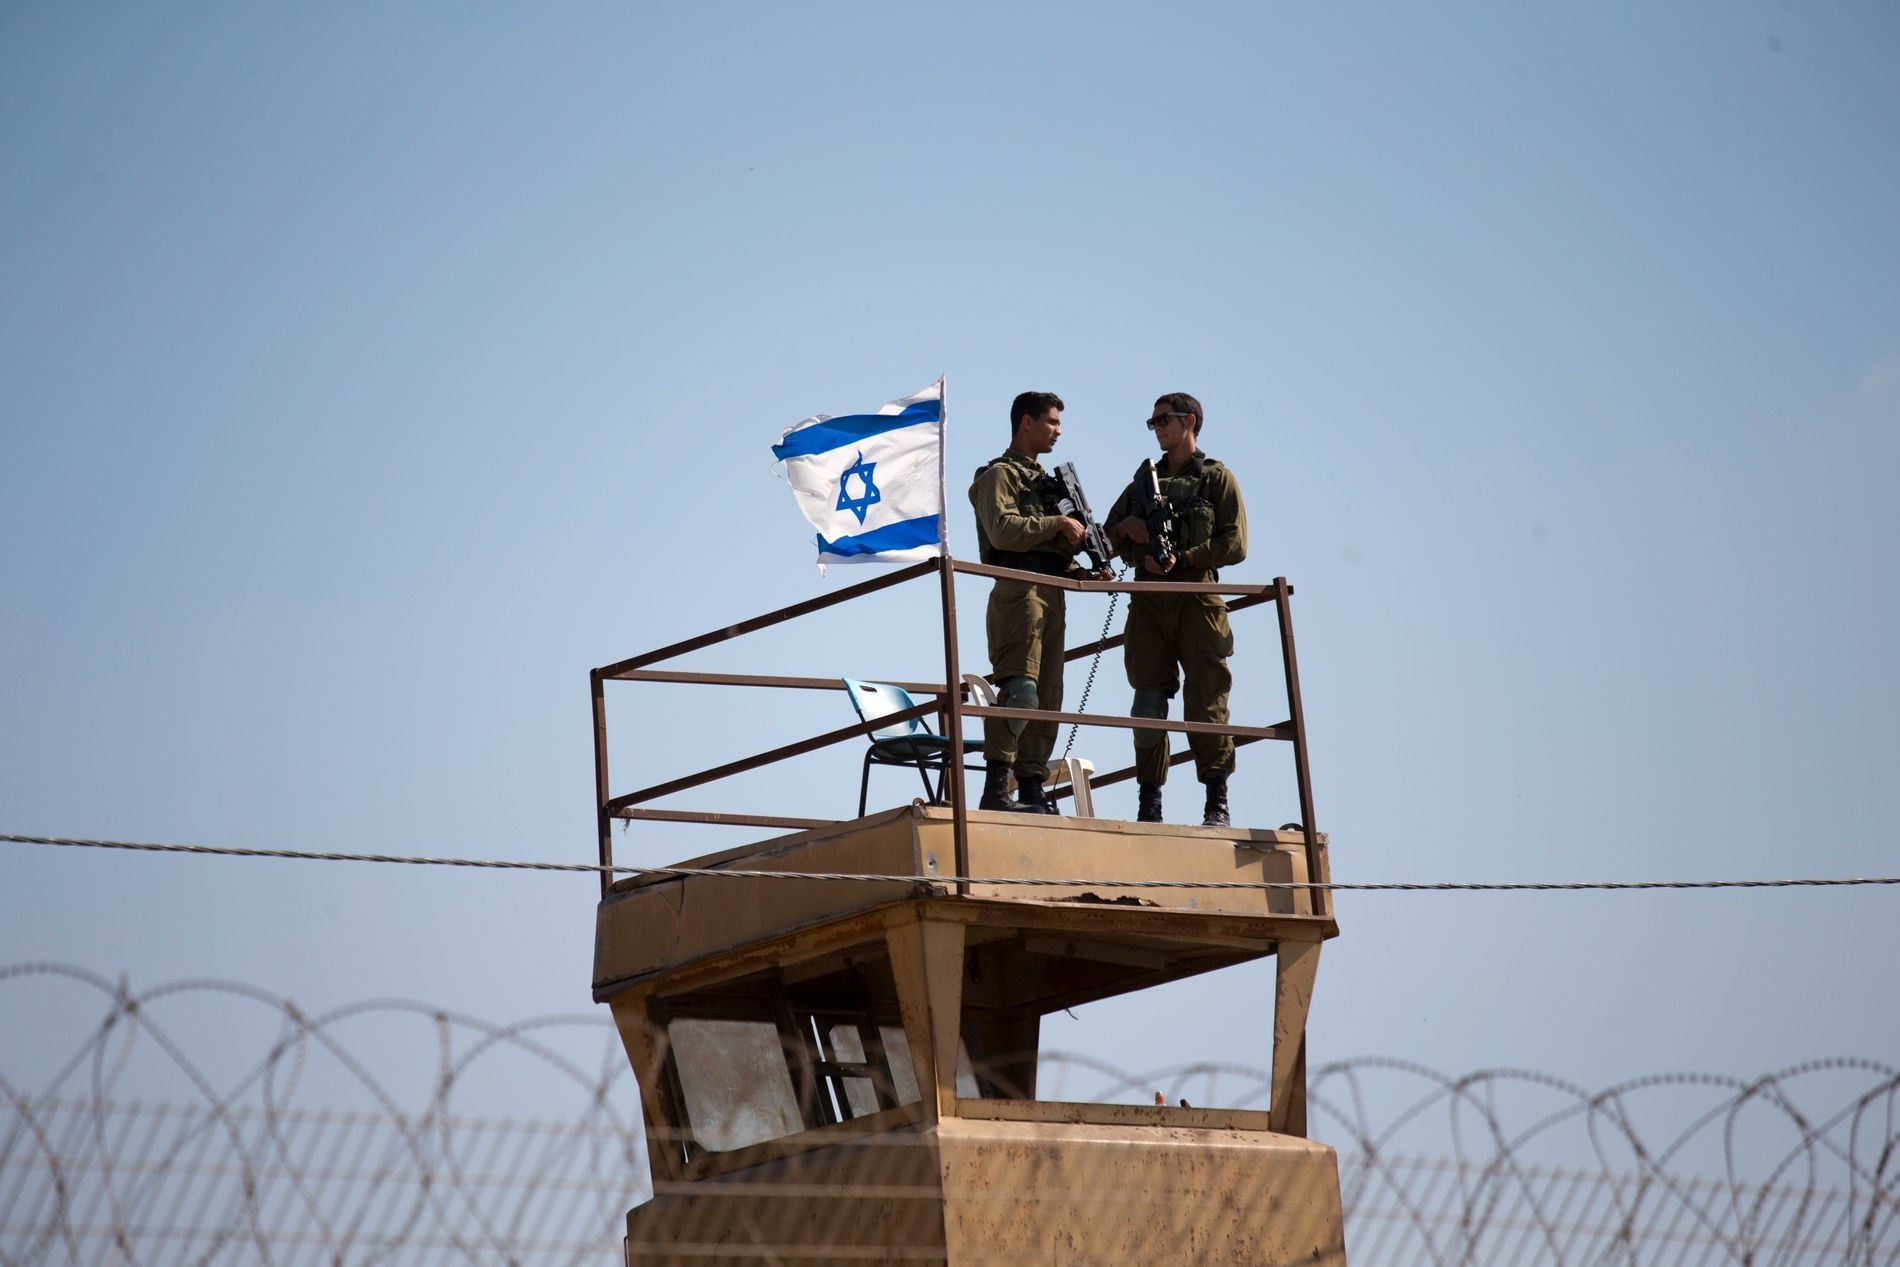 Israeli soldiers guard on top of a watch tower in a community along the Israel-Gaza border strip. — AP